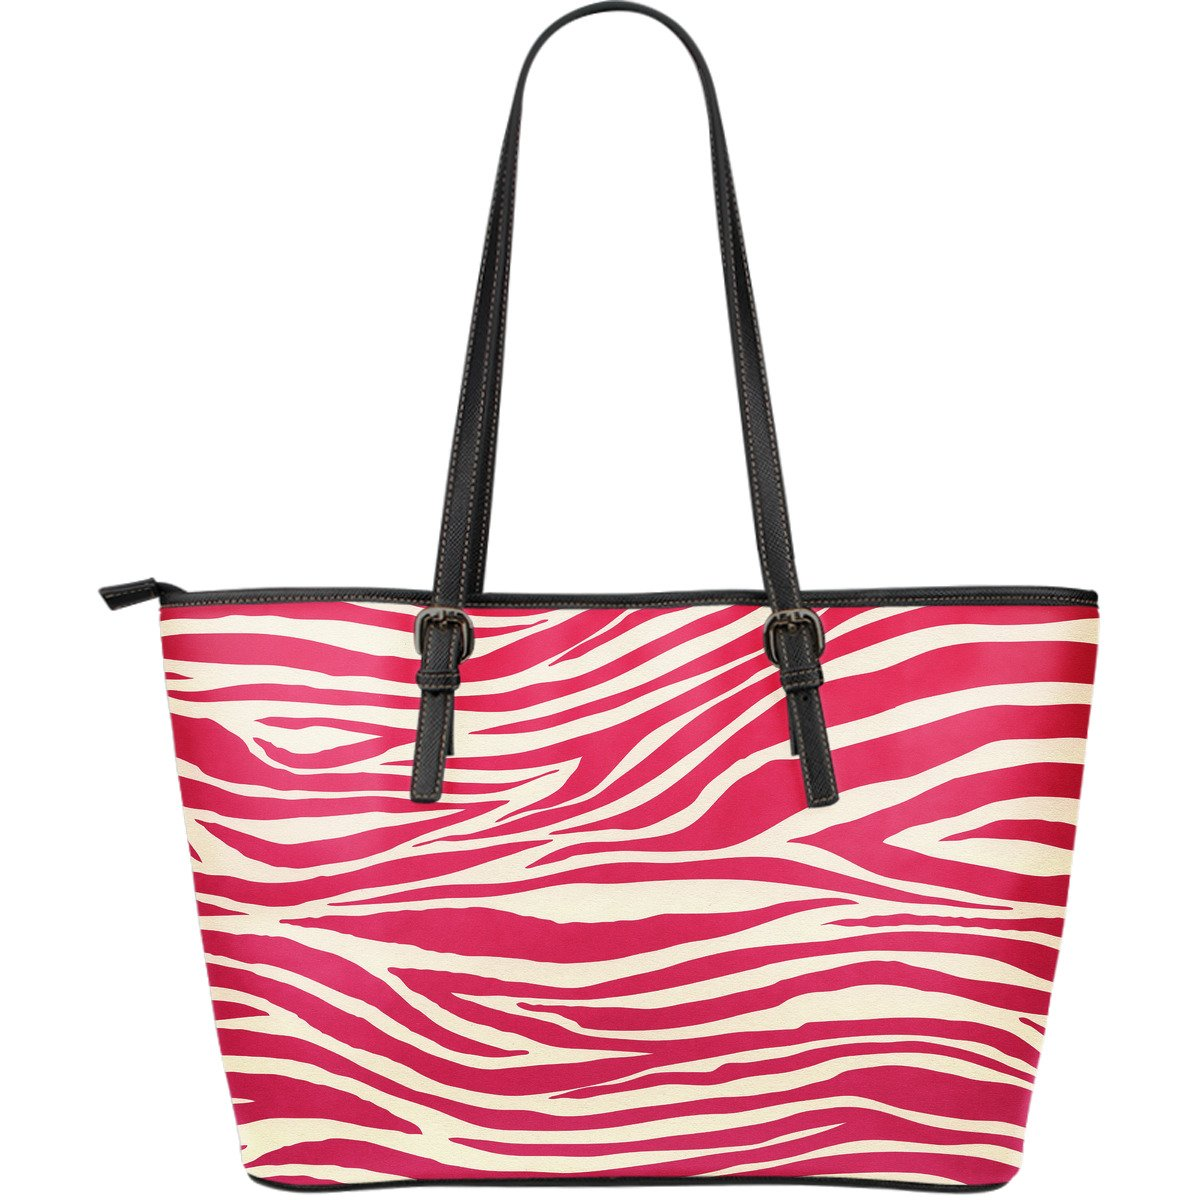 Hot Pink Zebra Pattern Print Leather Tote Bag GearFrost